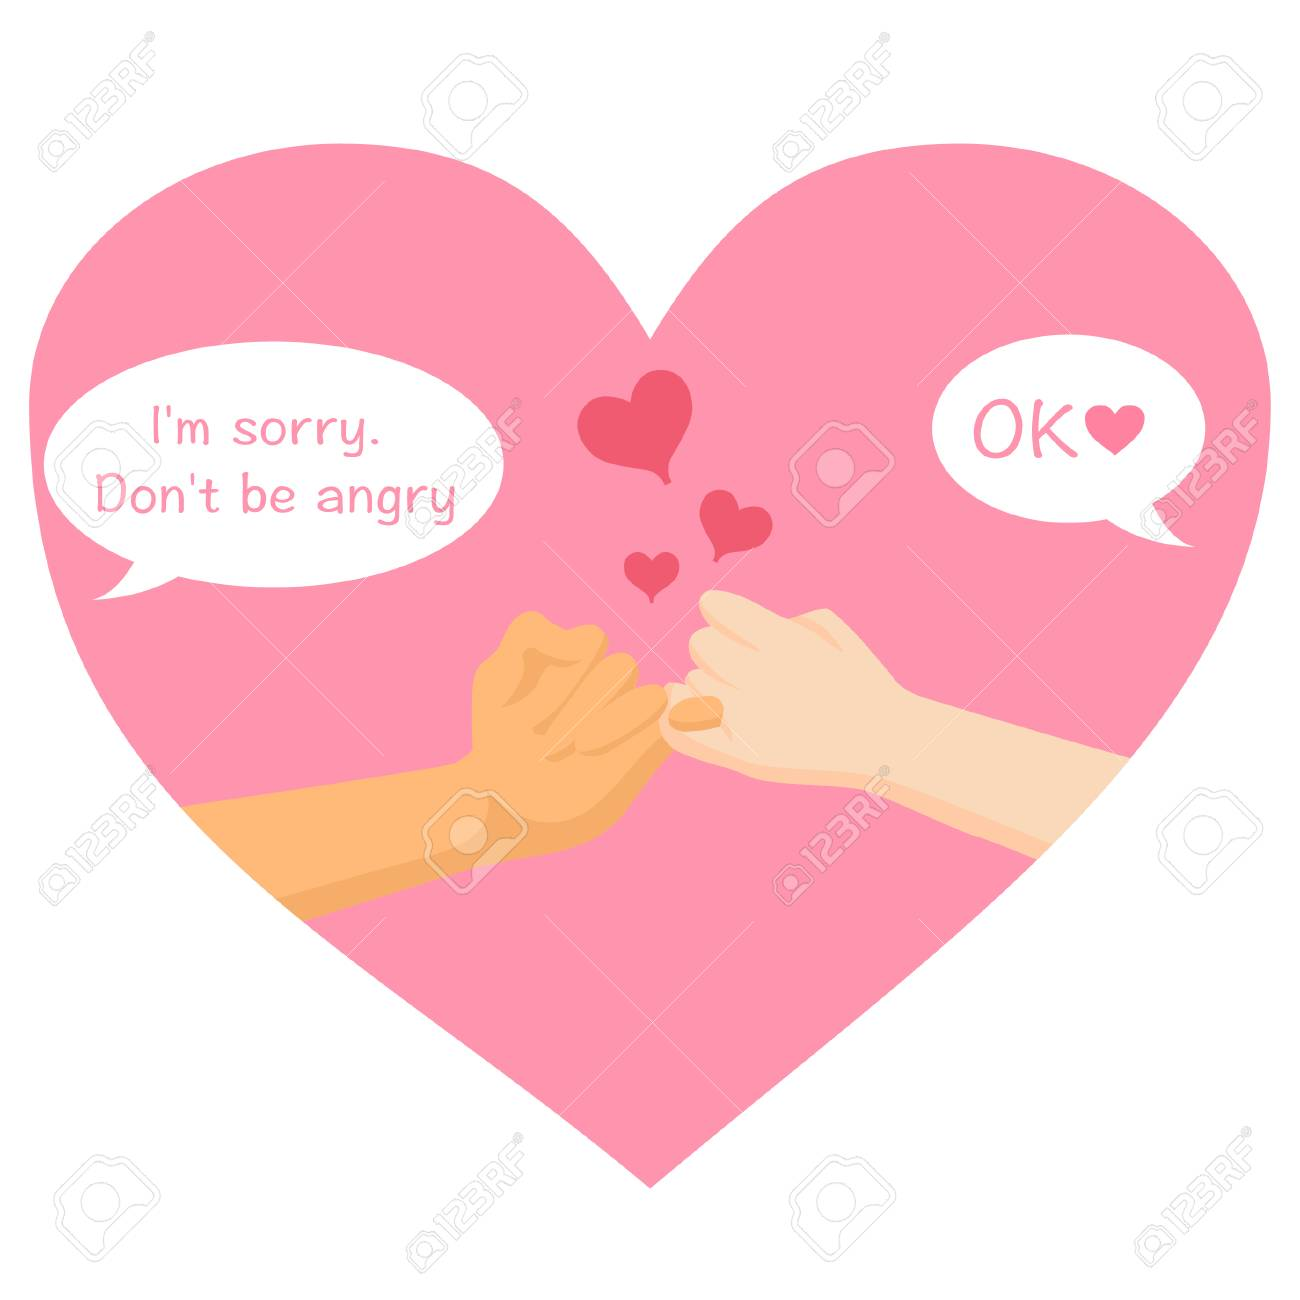 Im Sorry Dont Be Angry Cross Finger Hands Form On Pink Heart